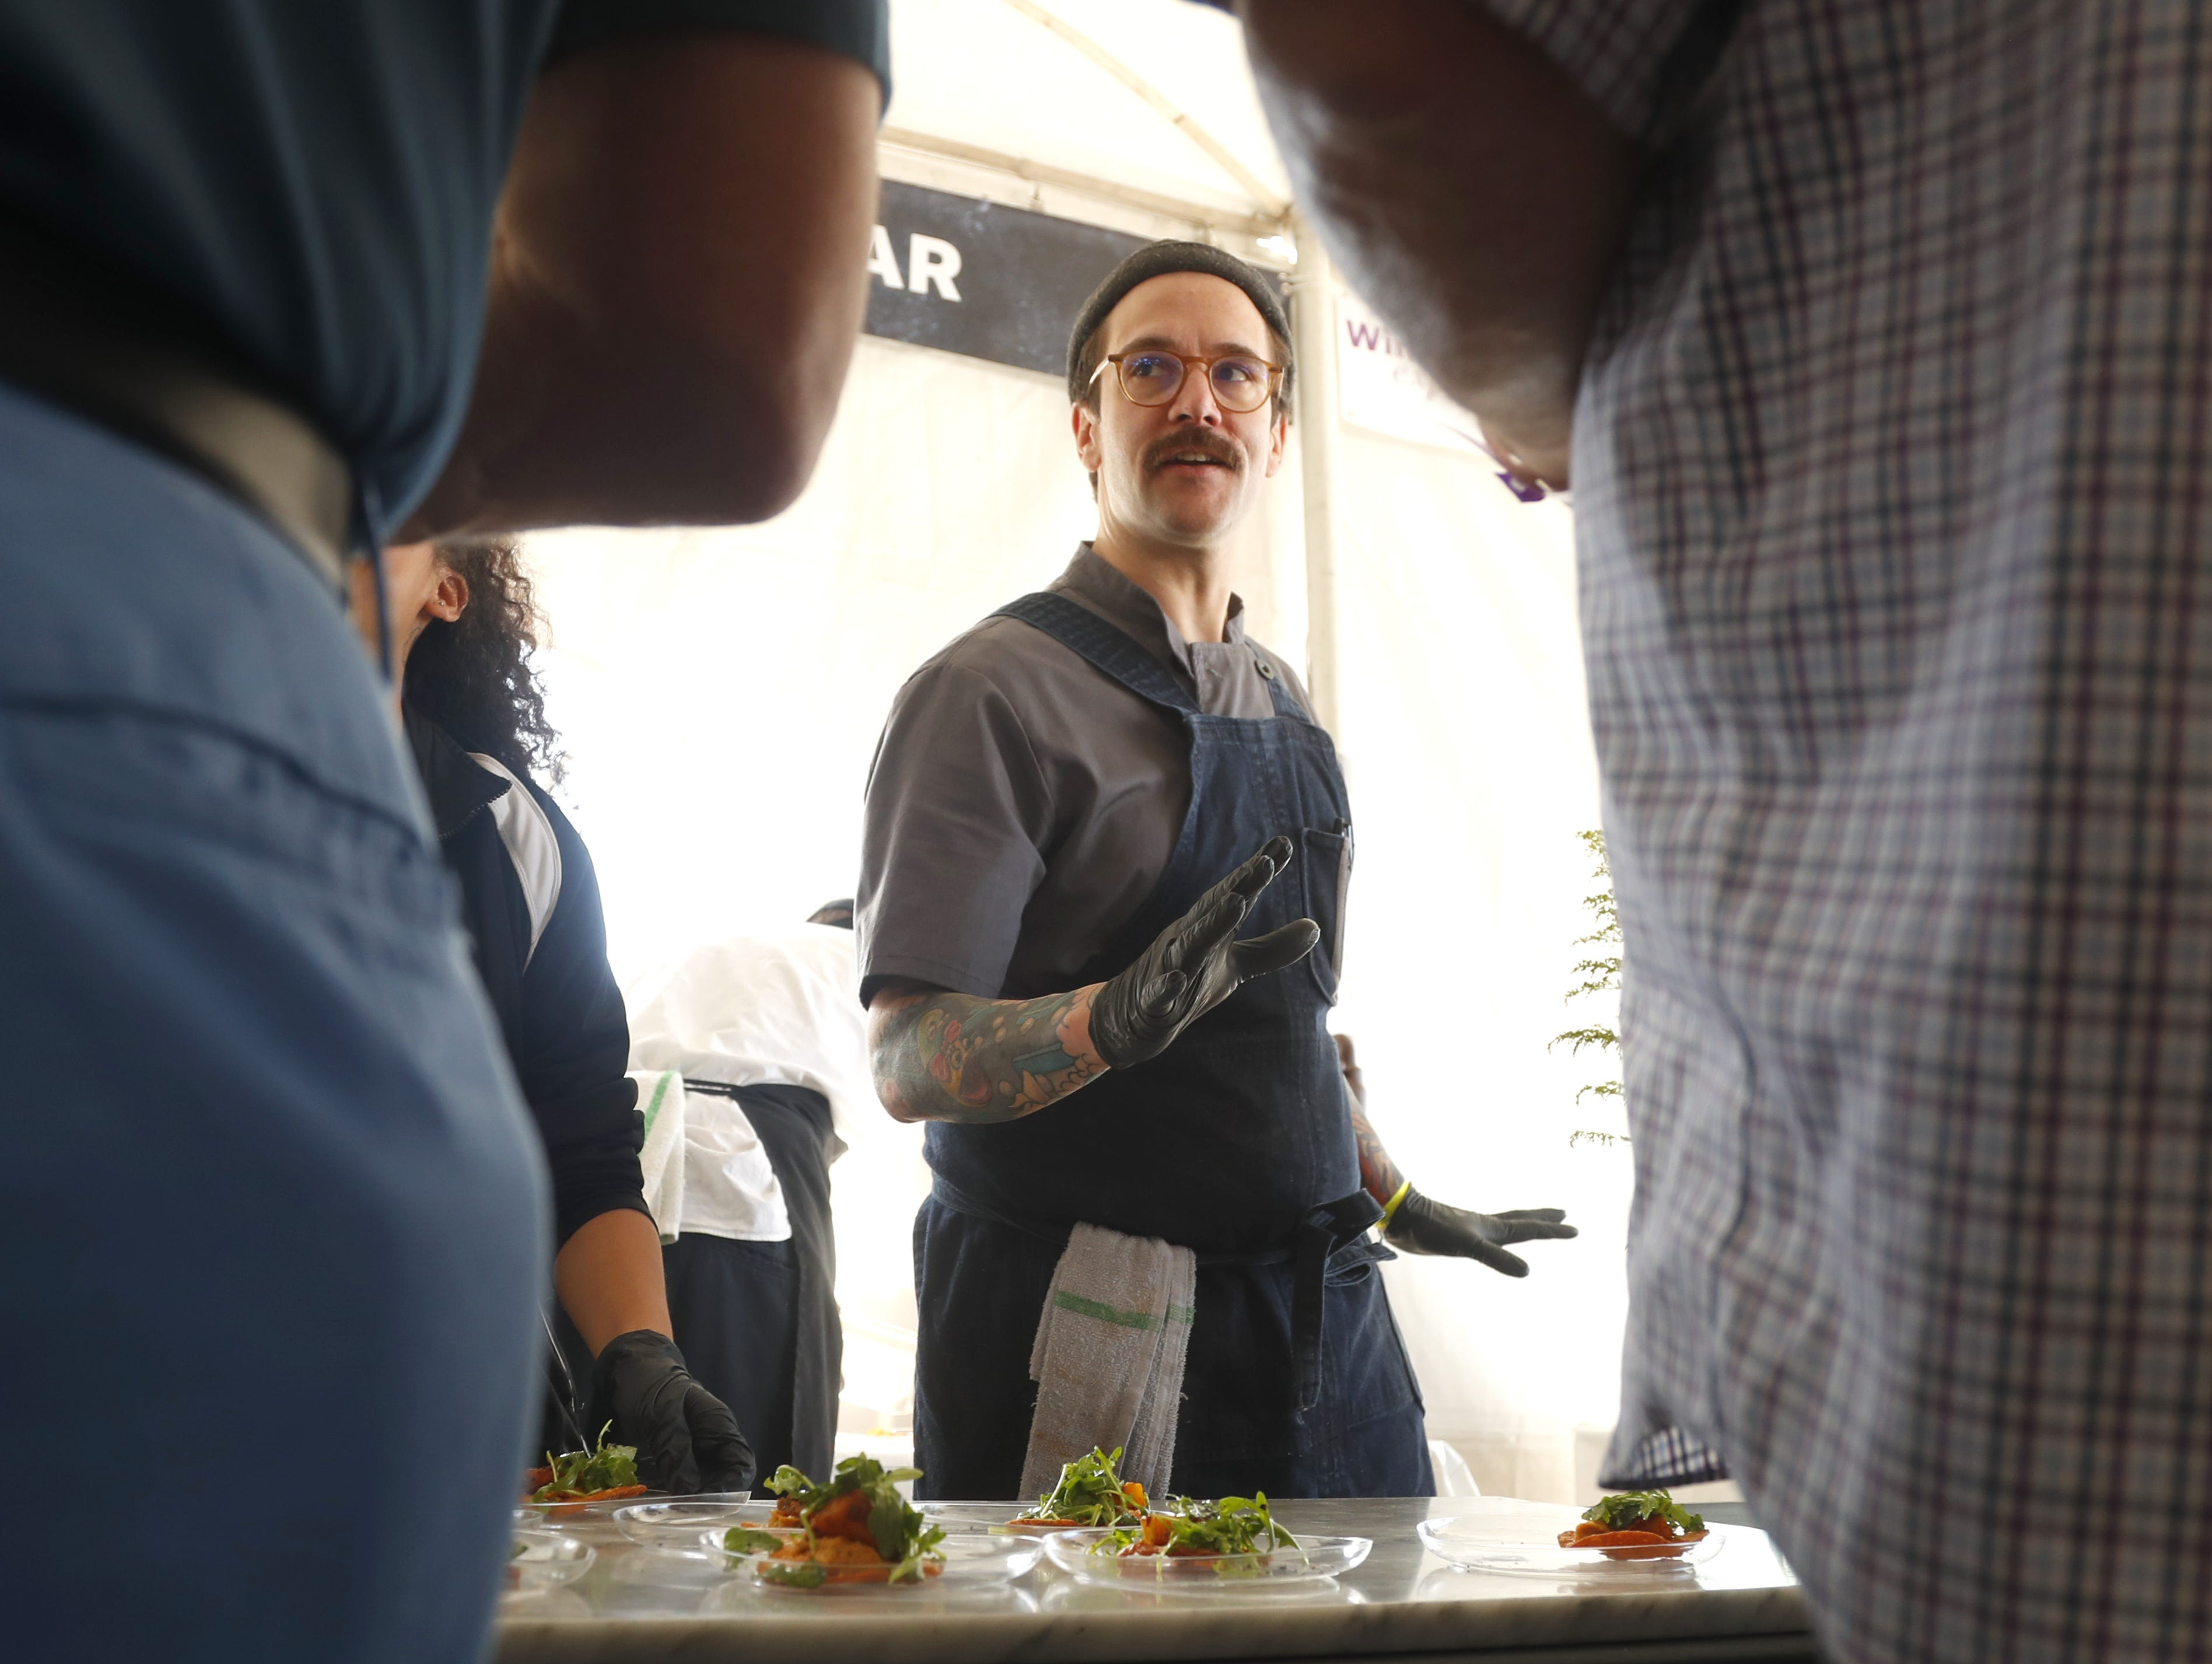 """Crepe Bar chef Jeff Kraus explains his """"crepe-tata"""" dish to samplers during the azcentral Wine & Food Experience at WestWorld of Scottsdale, Ariz. on Saturday, Nov. 3, 2018."""